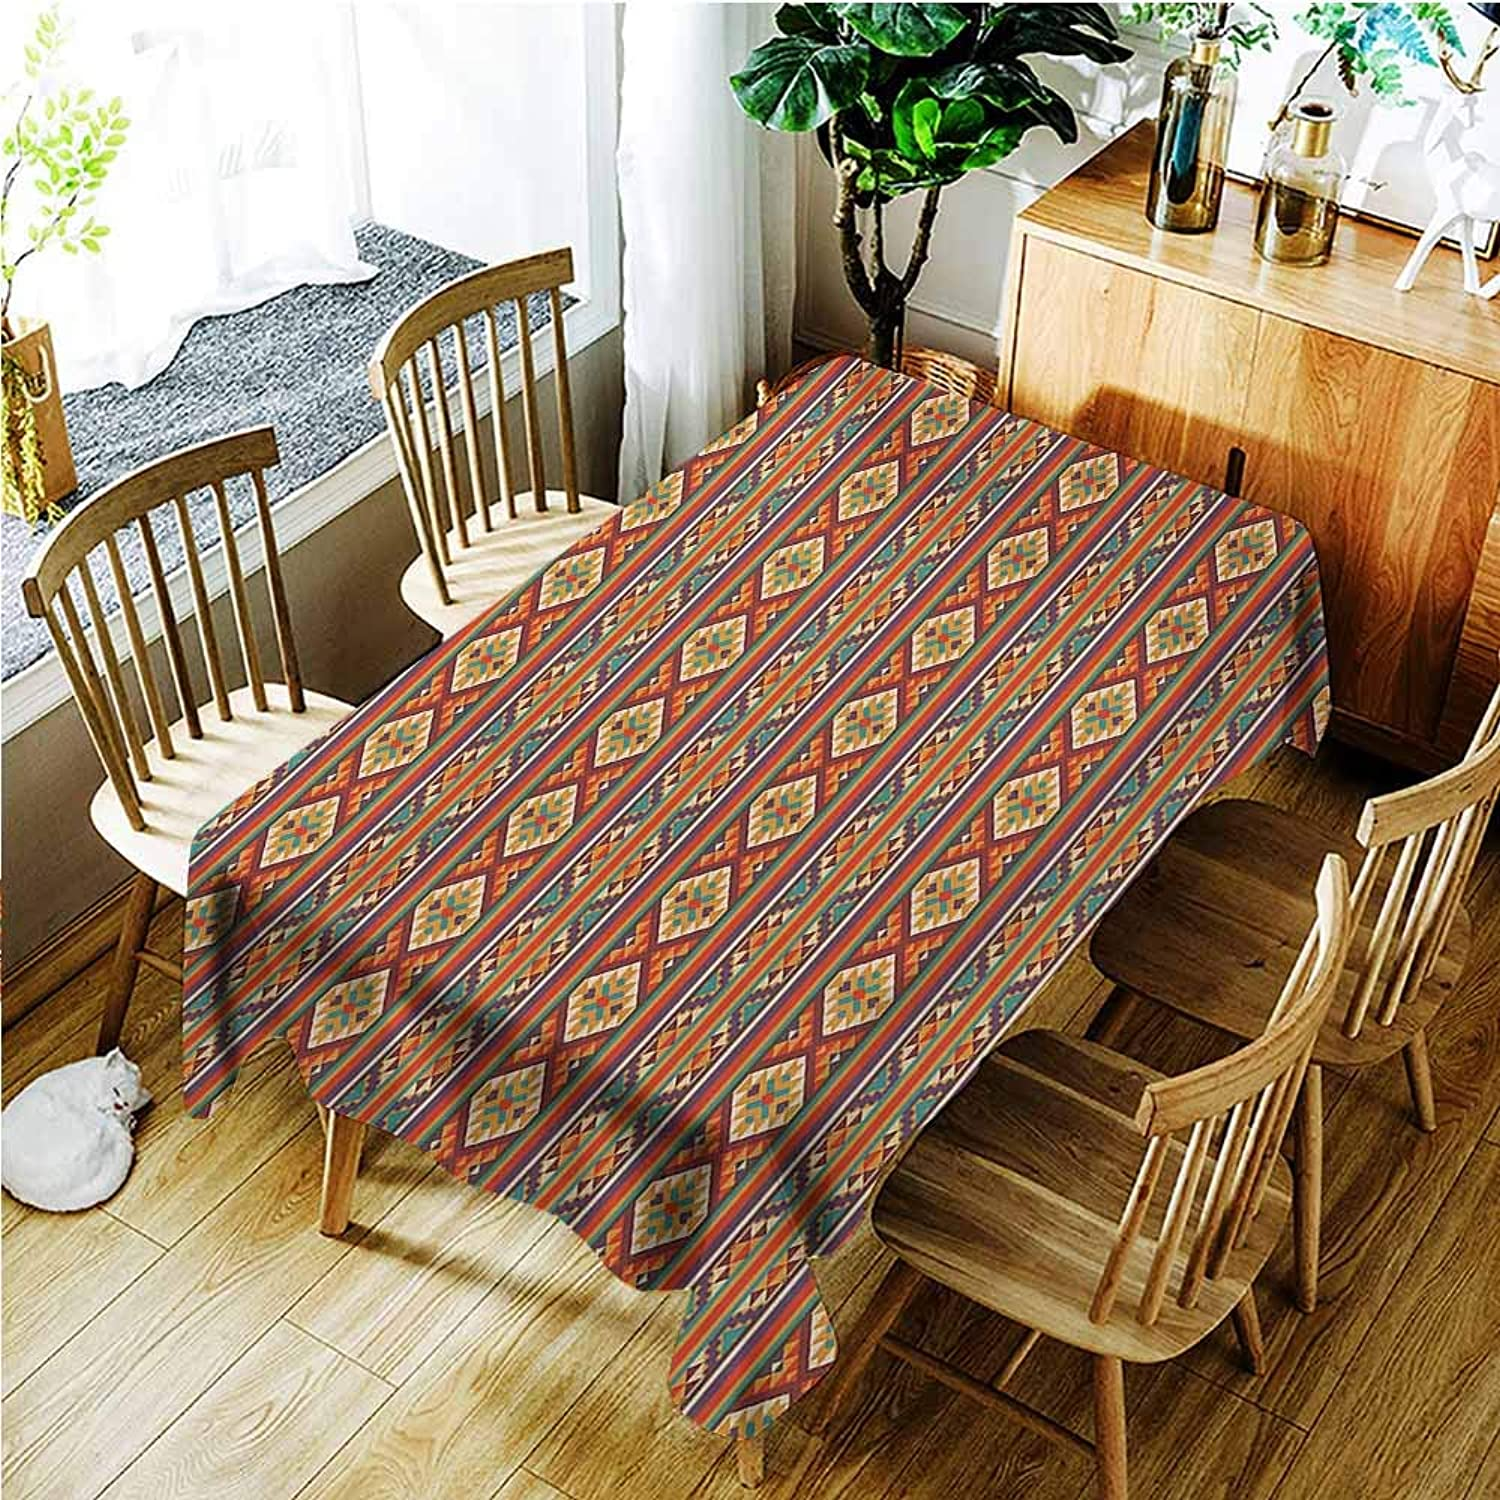 AndyTours Spill-Proof Table Cover,Native American Mosaic Inspired Horizontal Lines with Ethnic Graphic Figures Aztec Design,High-end Durable Creative Home,W60X102L,Multicolor